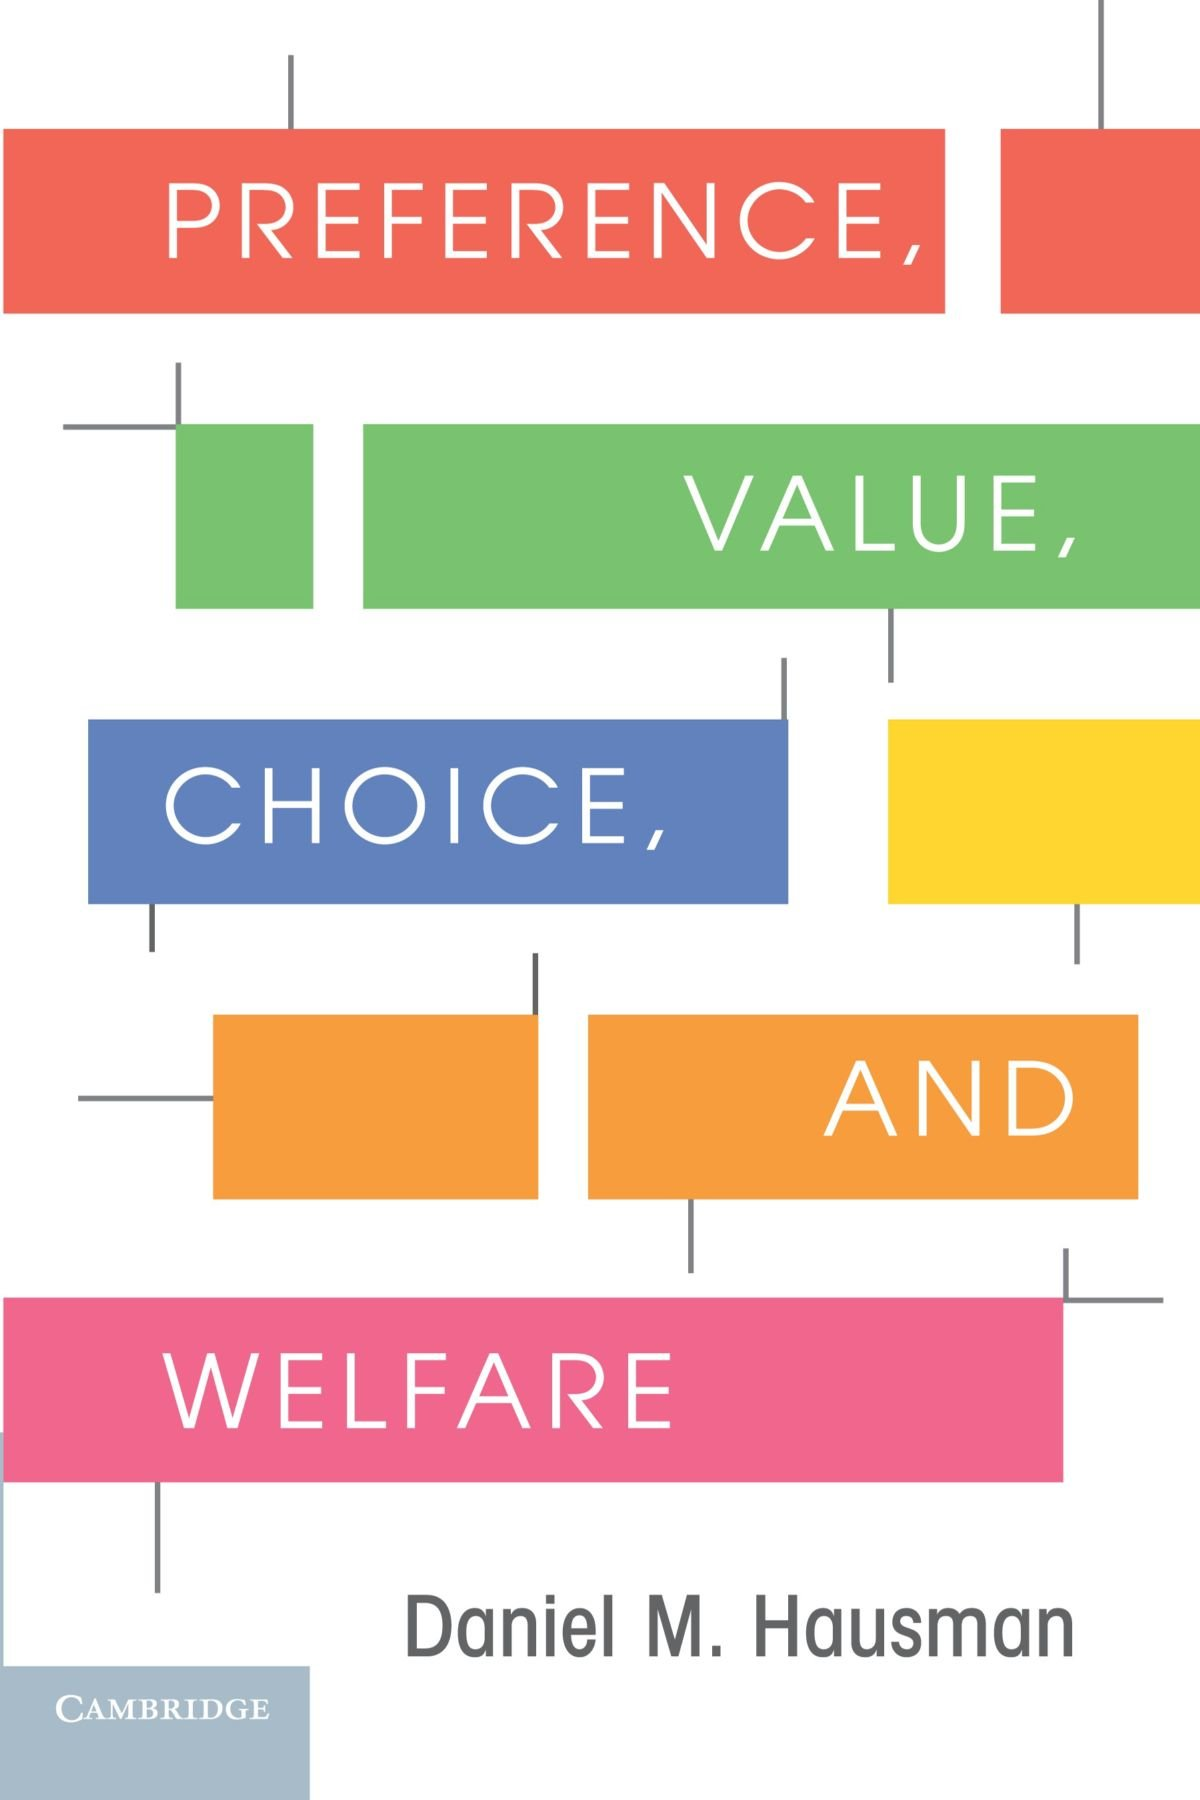 Preference value choice and welfare daniel m hausman preference value choice and welfare daniel m hausman 9781107695122 amazon books fandeluxe Gallery